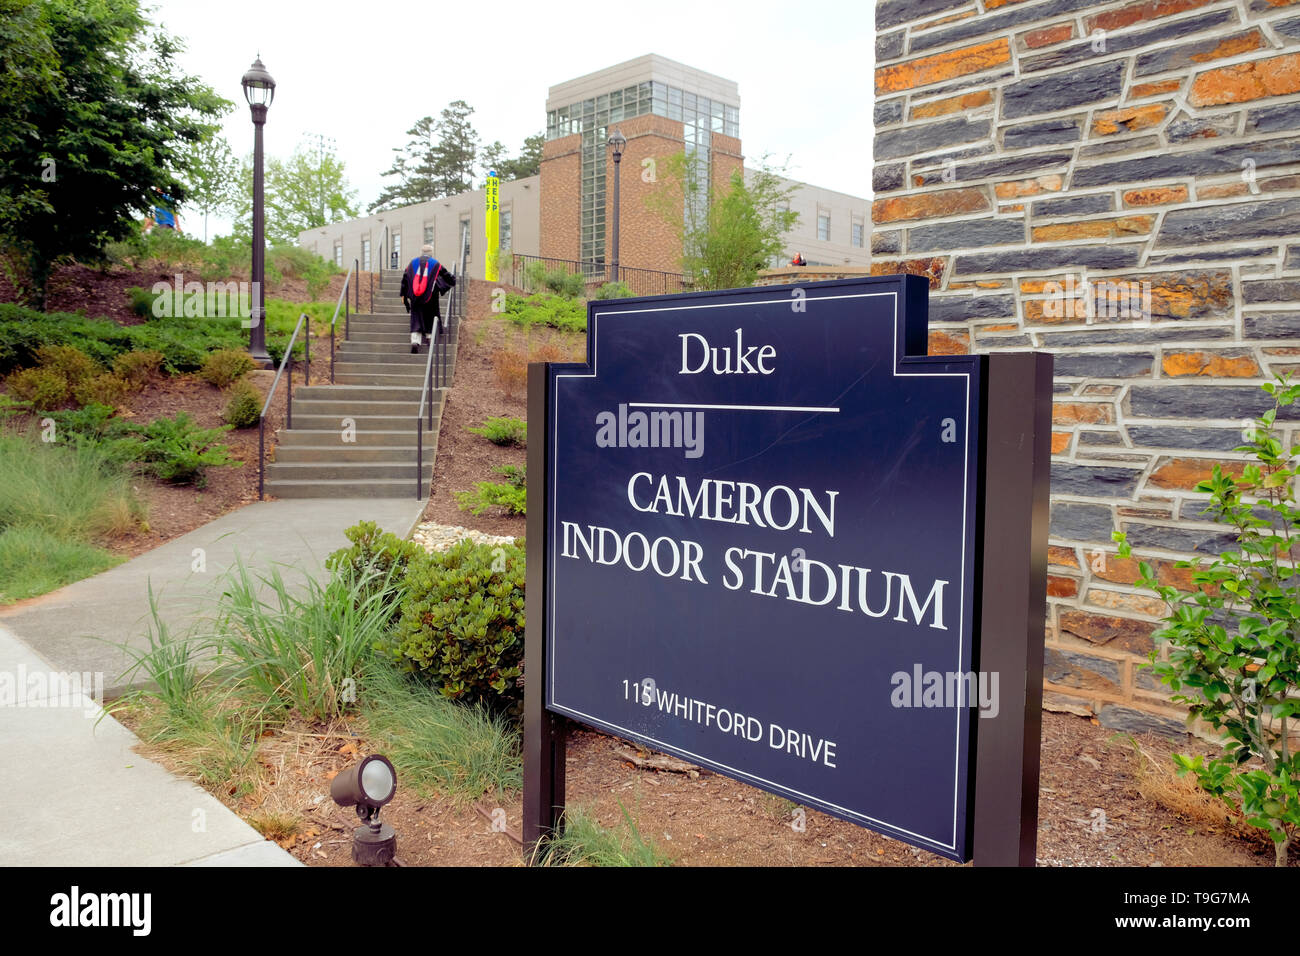 Exterior Cameron Indoor Stadium sign at Duke University in Durham, North Carolina; home of the Duke Blue Devils basketball team. - Stock Image